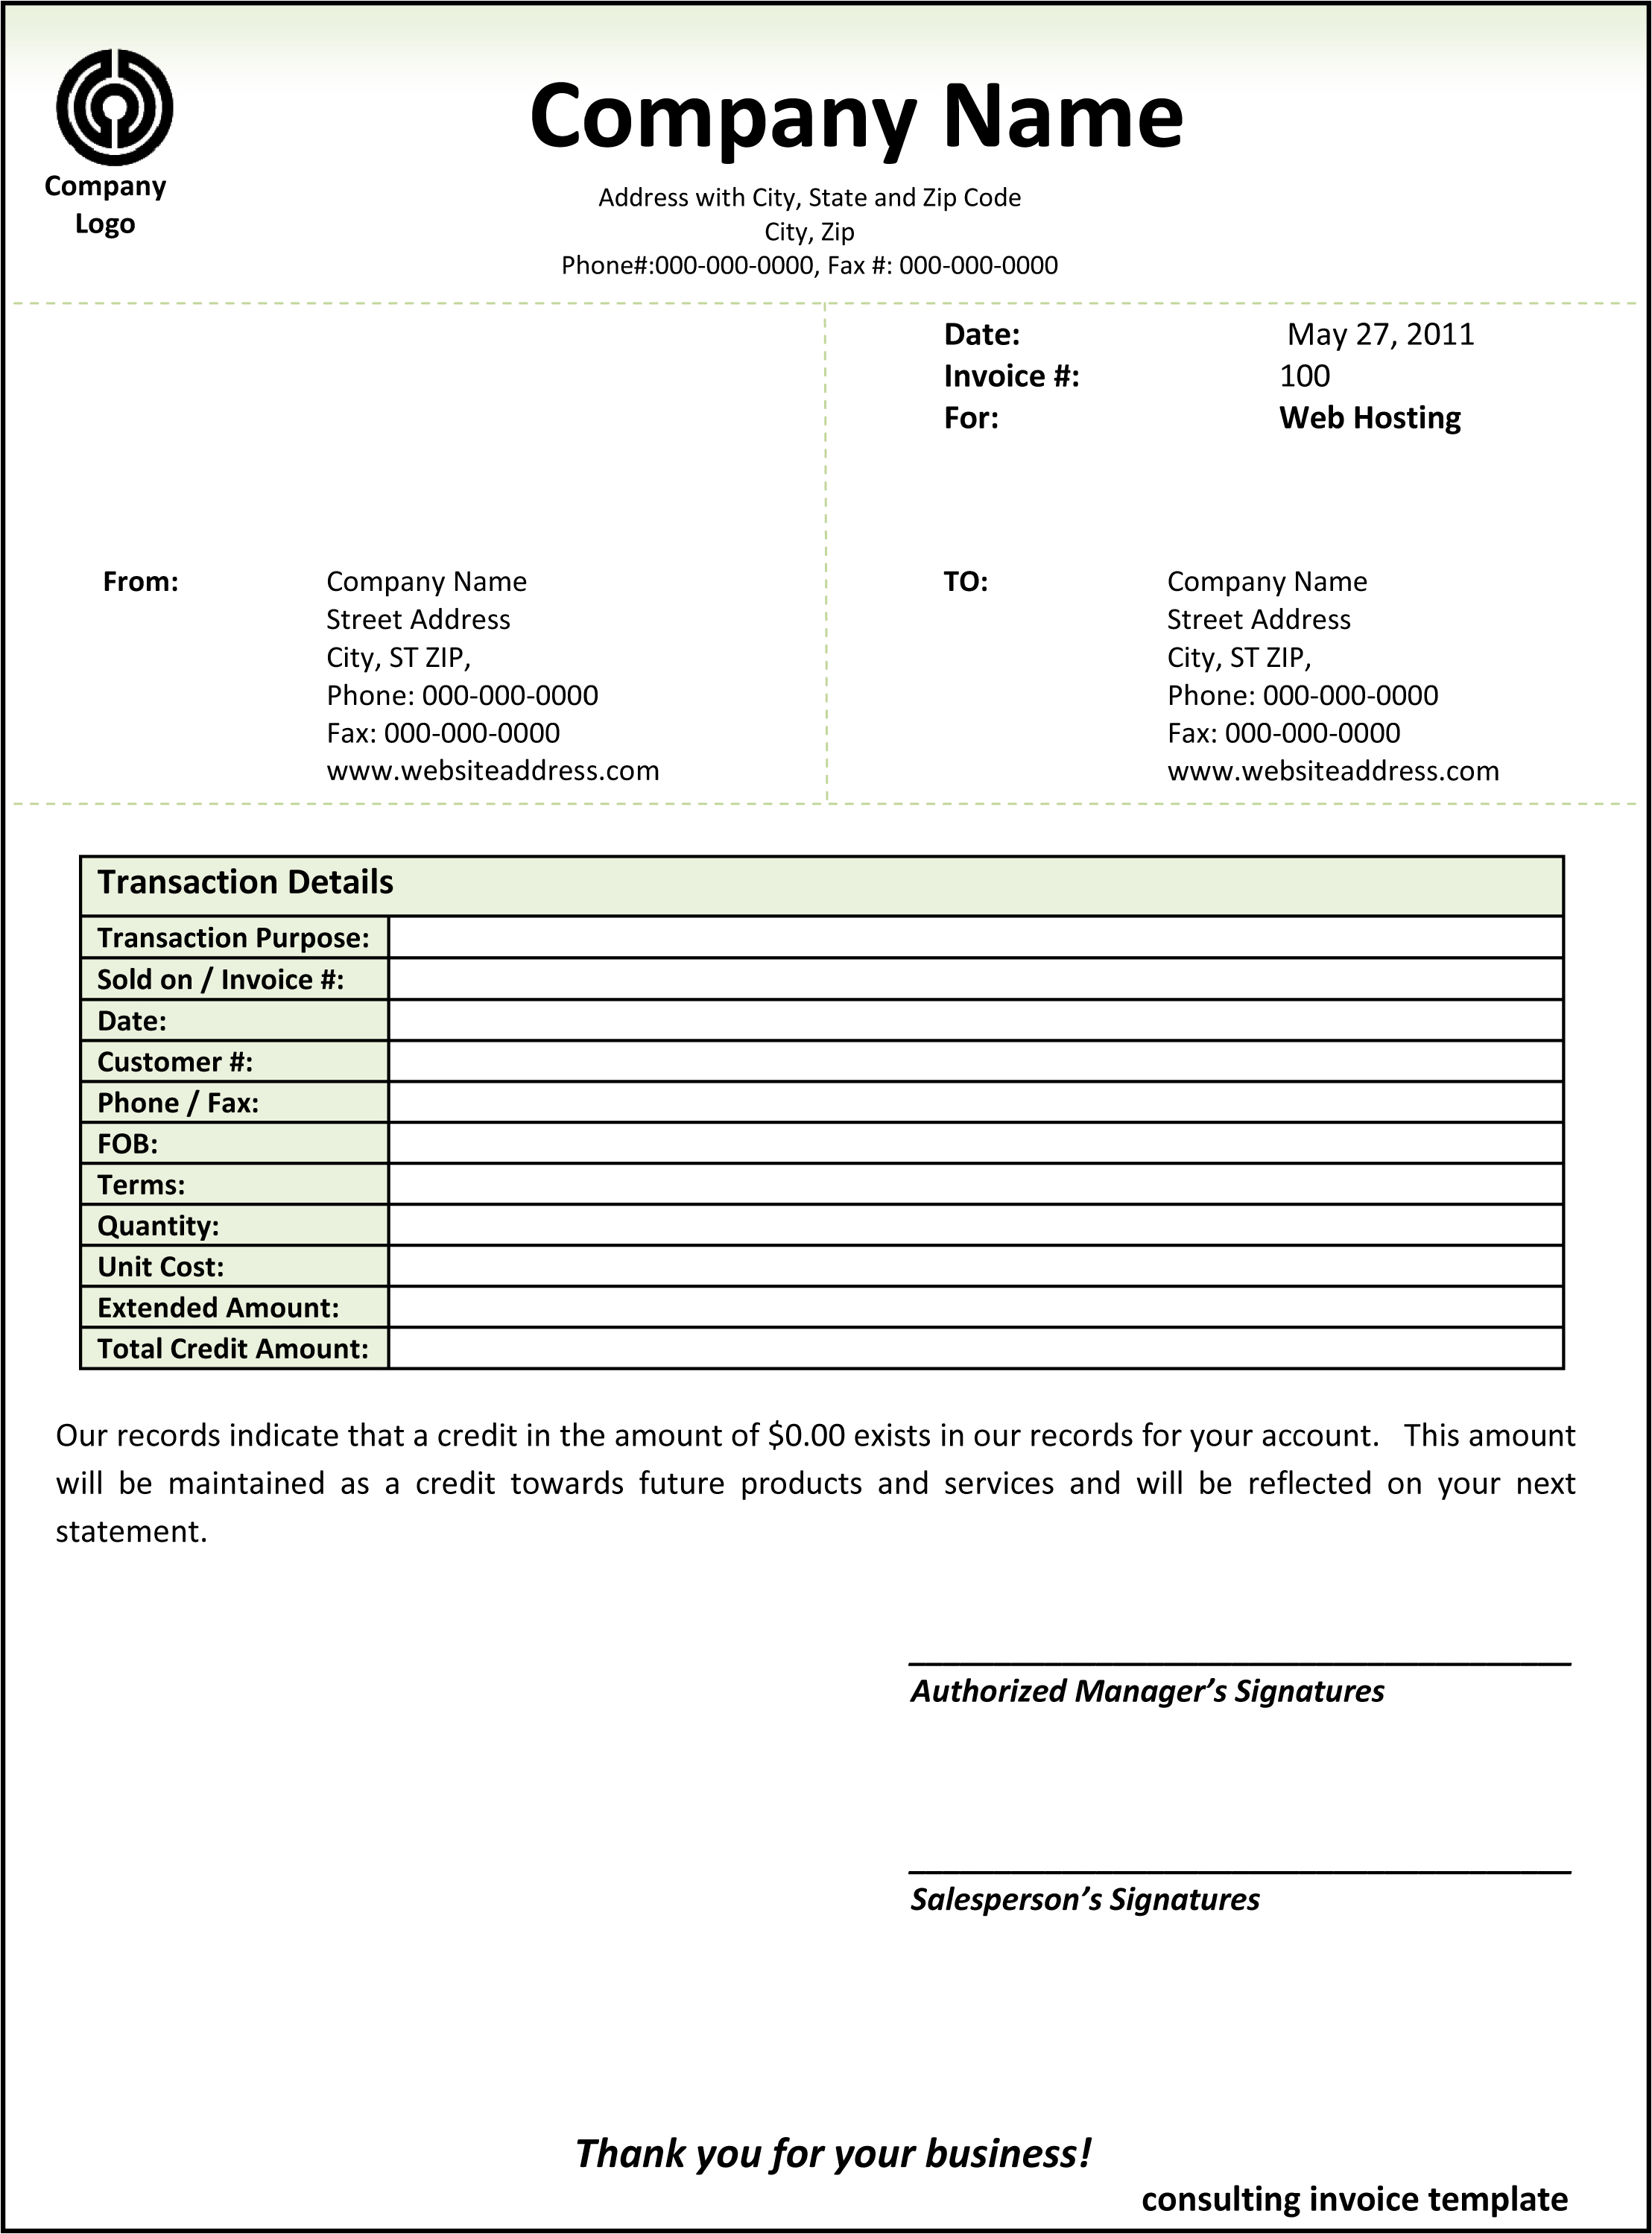 free billing invoice template microsoft word forolab4 co